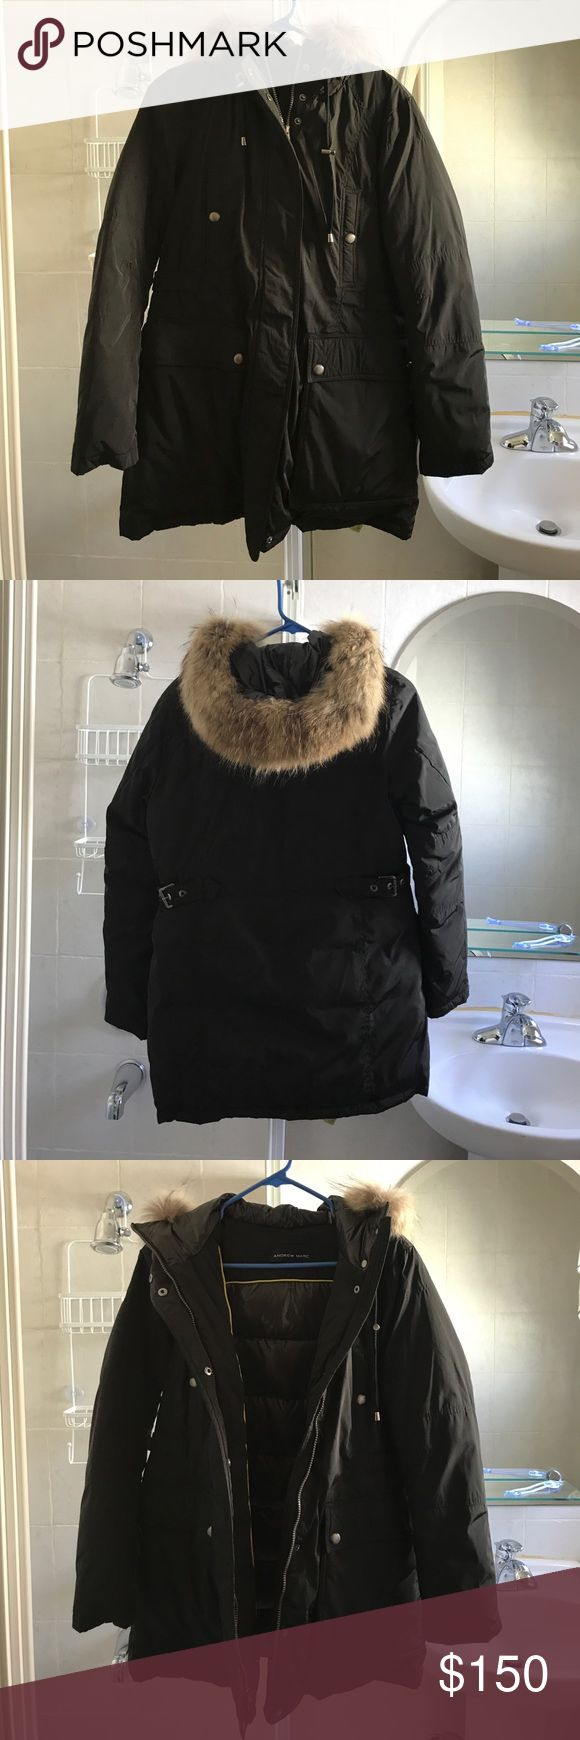 Andrew Marc Fur Hood Trim Down Jacket Black Andrew Marc insulated down jacket with real brown fur trimmed hood in size medium. Has two deep pockets in the front and a small zippered one along the inside of the jacket. Never worn and in perfect condition. Andrew Marc Jackets & Coats